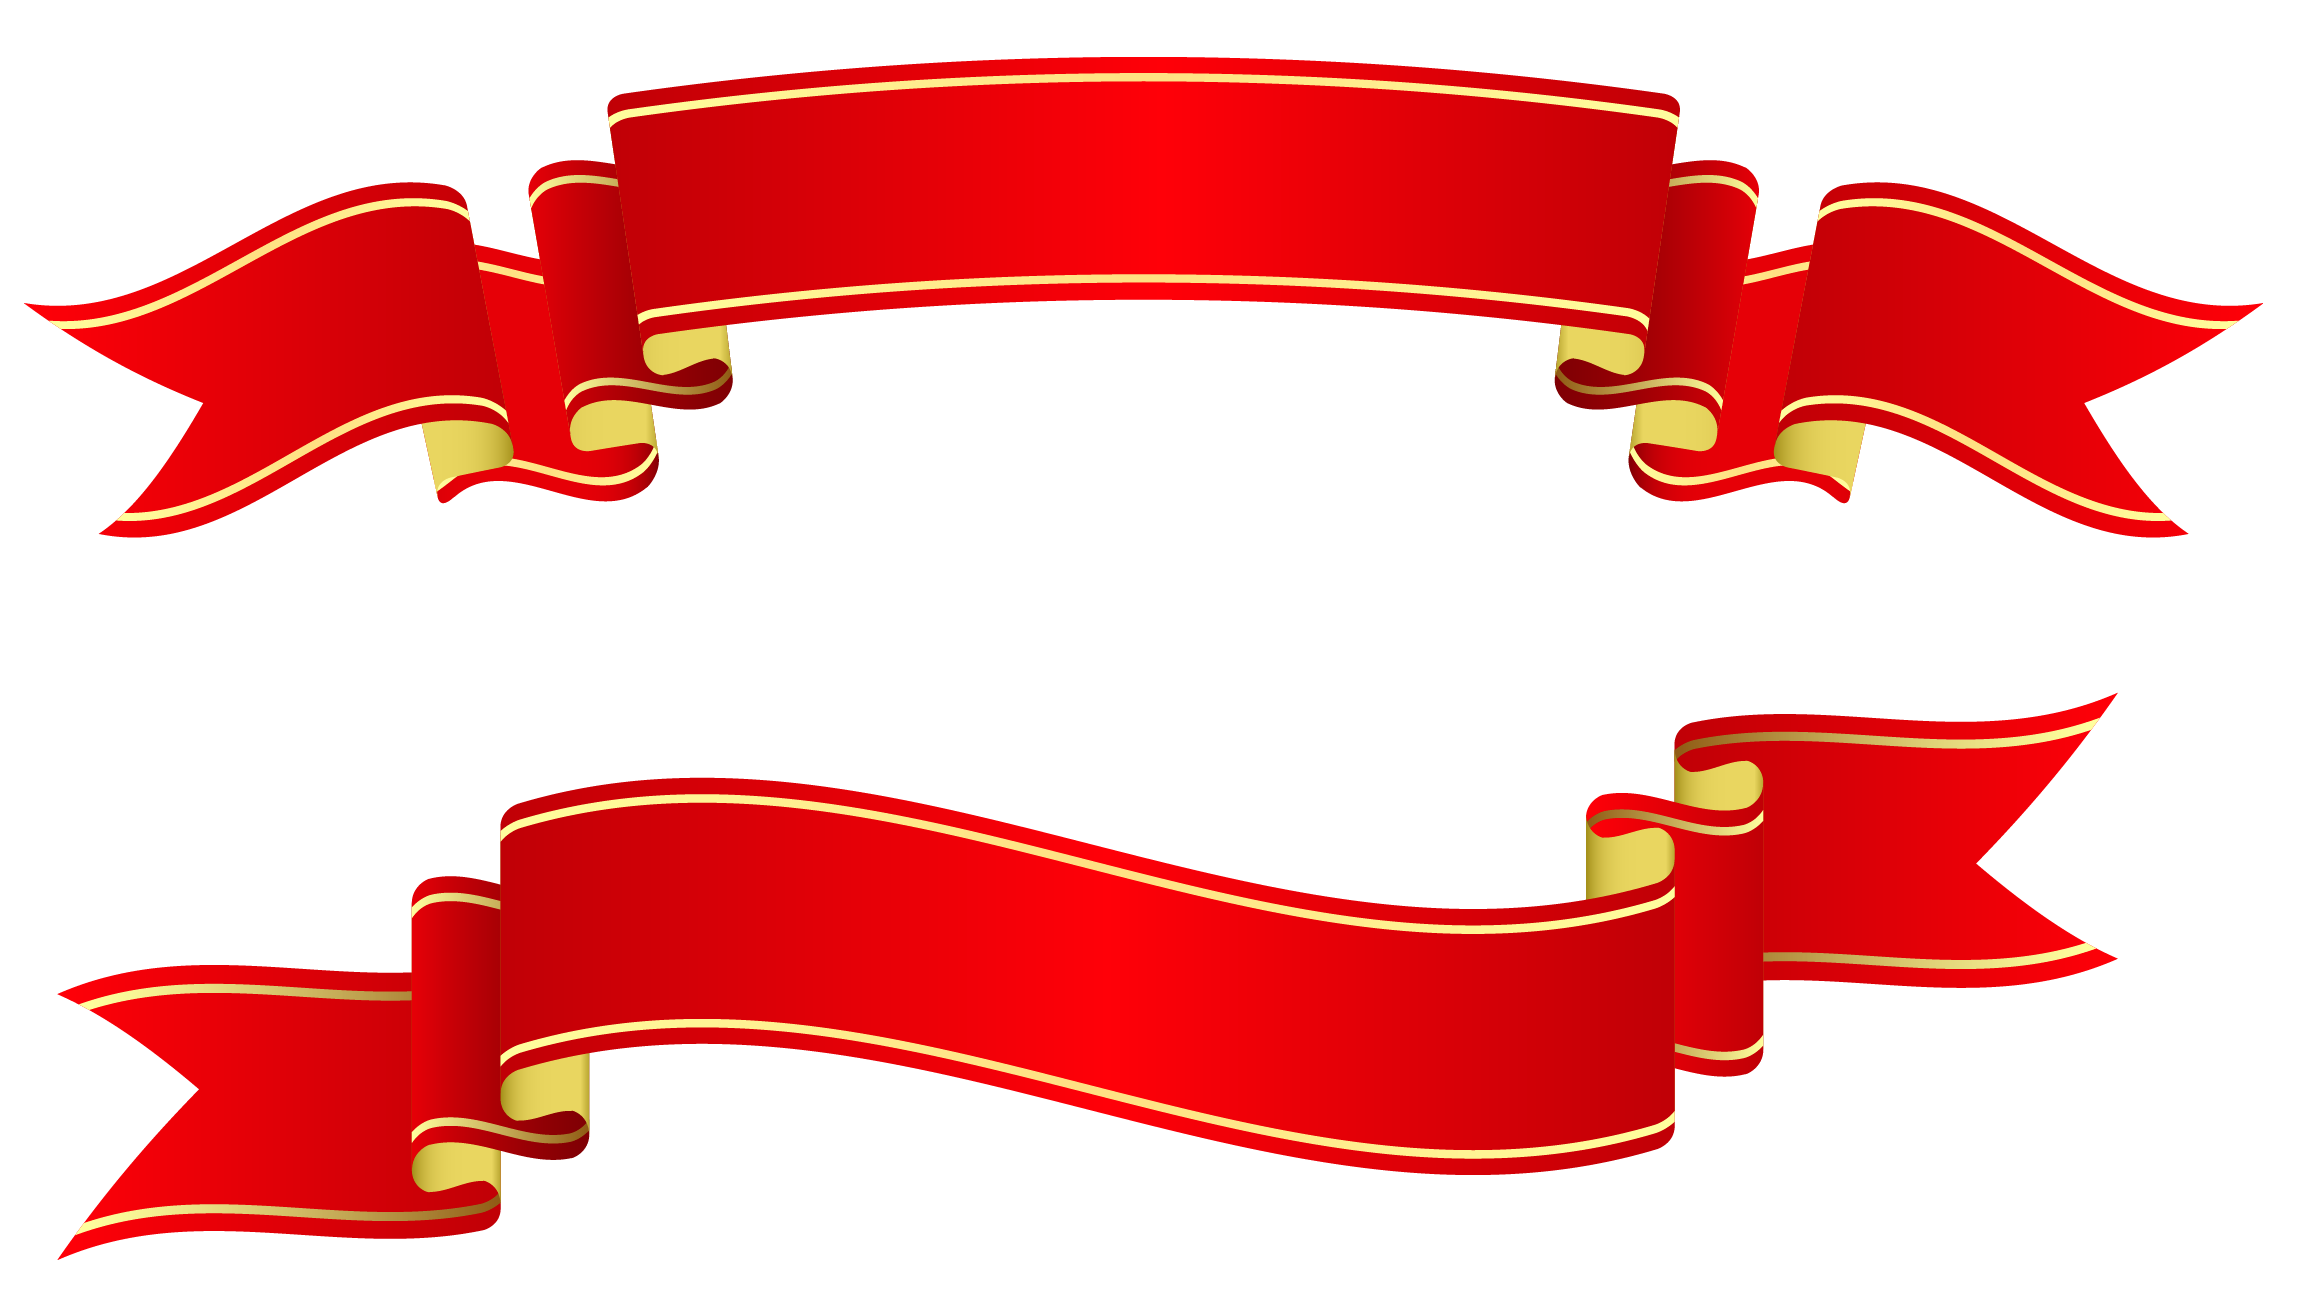 Red banners picture gallery. Clipart png